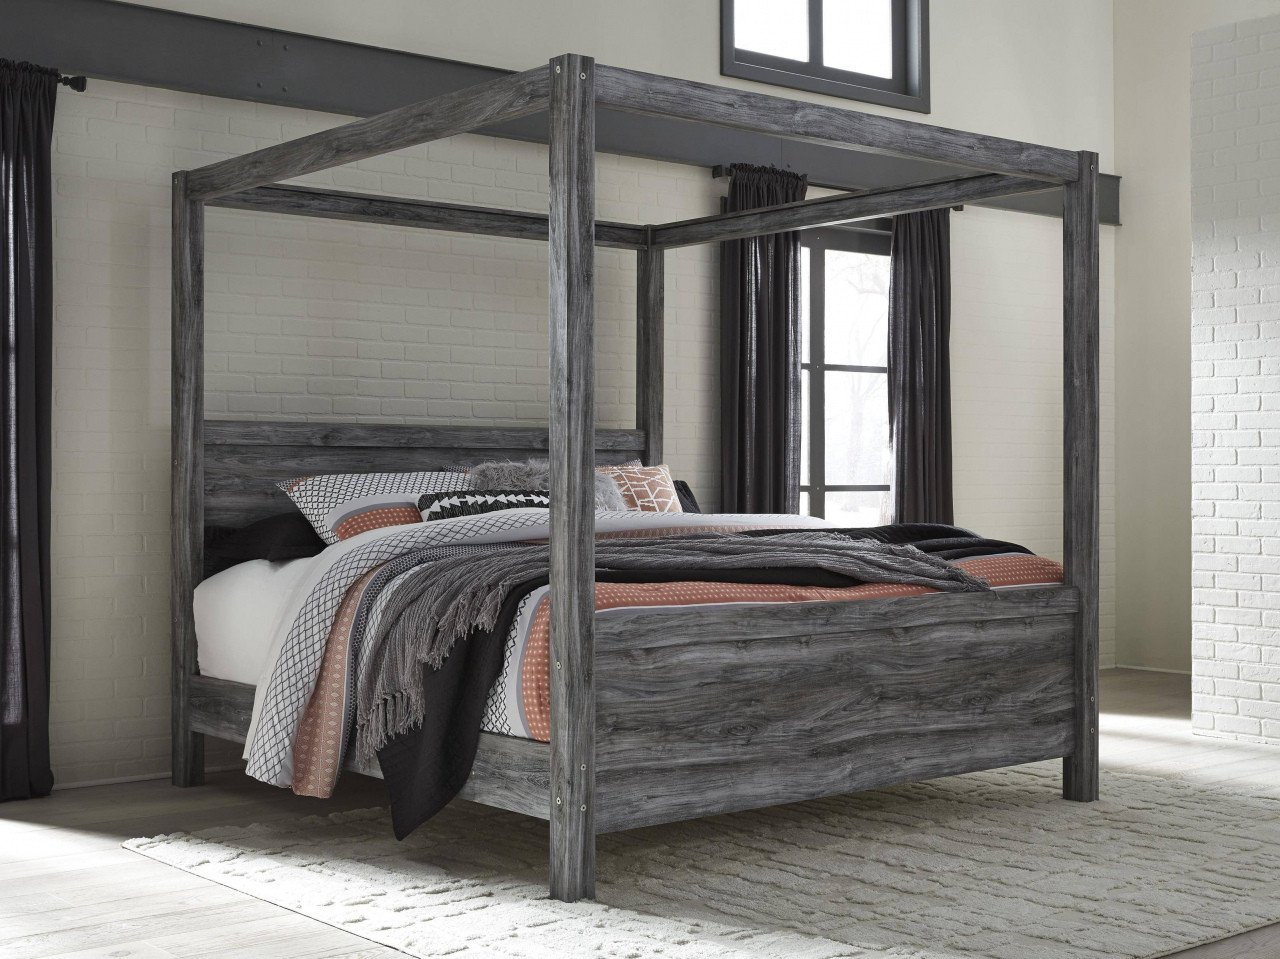 King Size Poster Bedroom Set Elegant Iron Canopy Bed Frame — Procura Home Blog